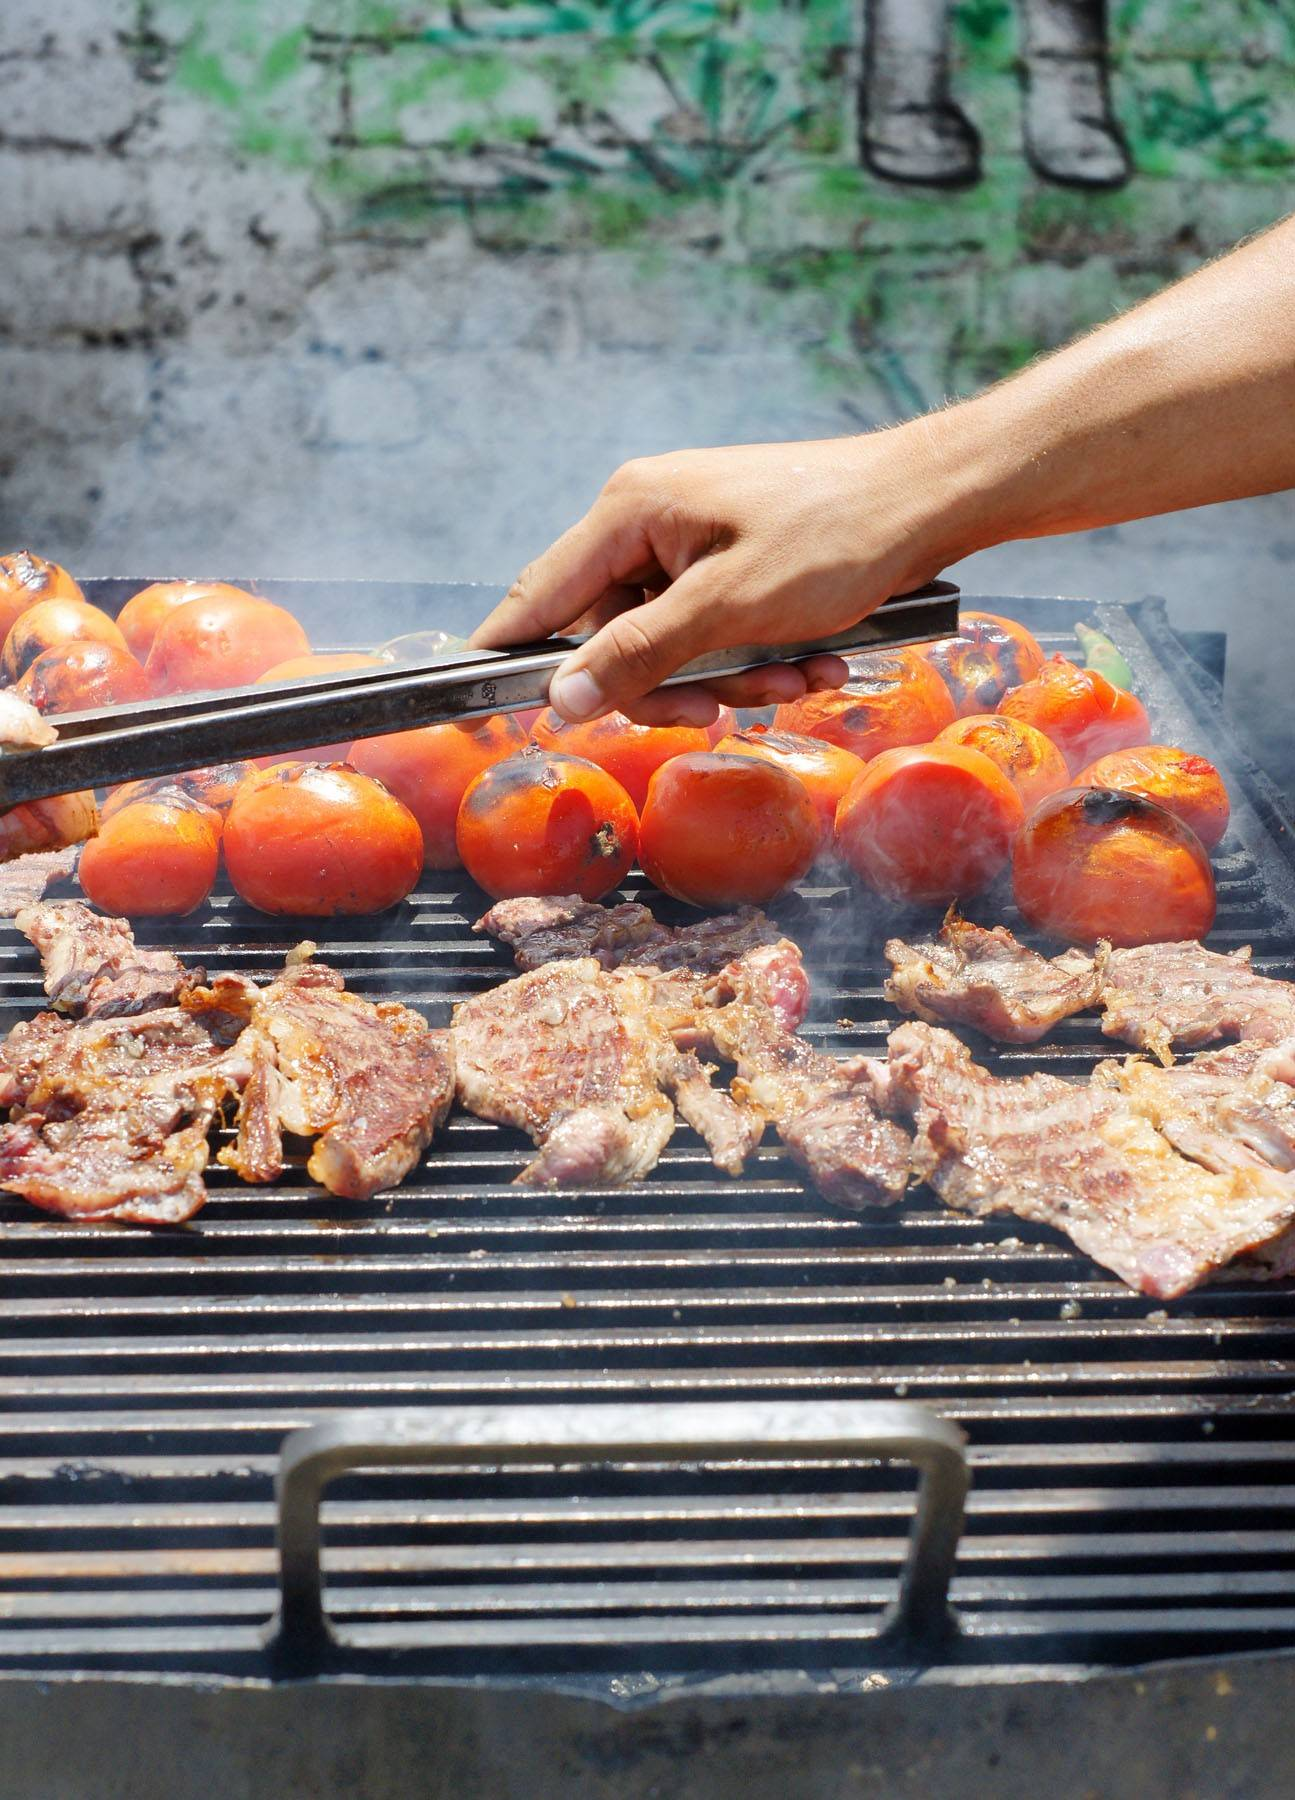 Don't let your summer cookouts be ruined by cooking fresh ingredients on fired on grease and rust from last year. It's time to get your grill in order.